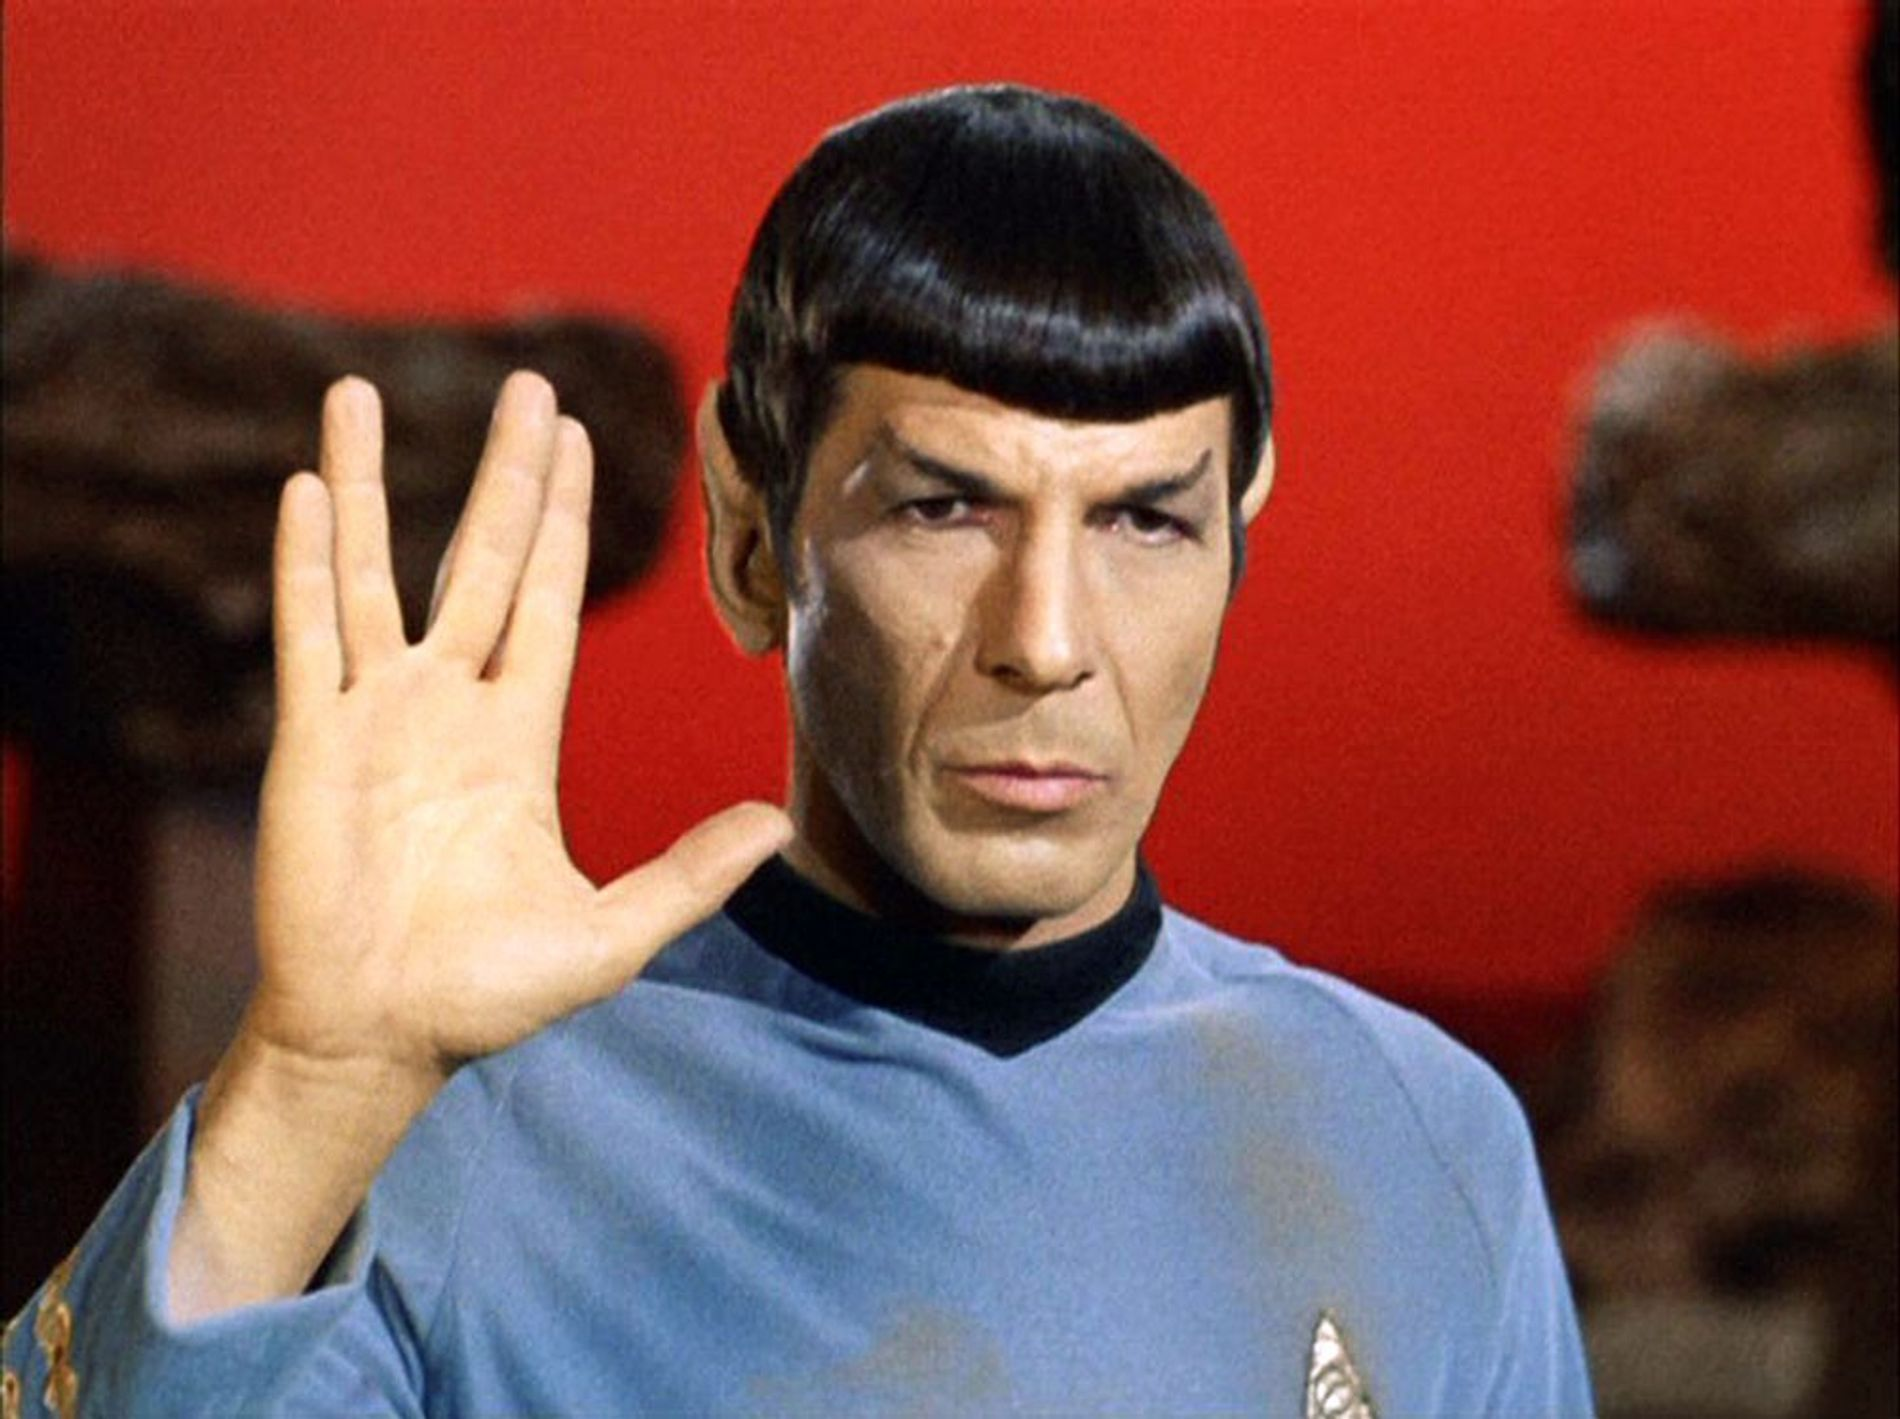 Actor Leonard Nimoy originated the Vulcan salute on the 1960s television series Star Trek.